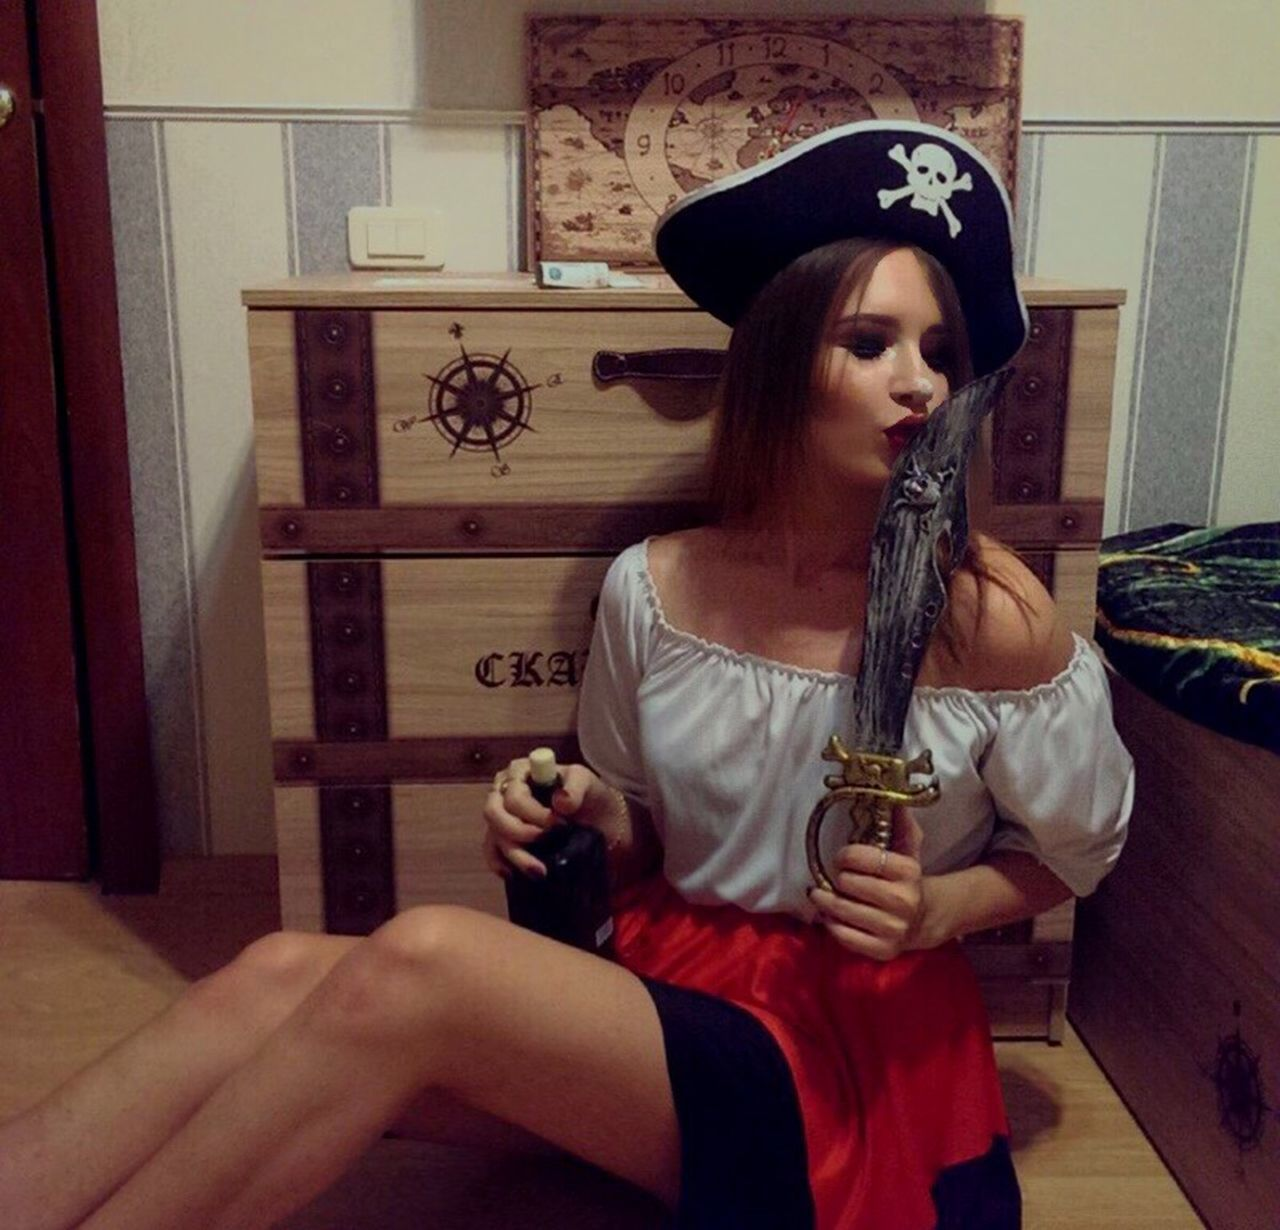 Women Young Women One Woman Only Only Women Corsair Pirates Pirate пират пираты One Person